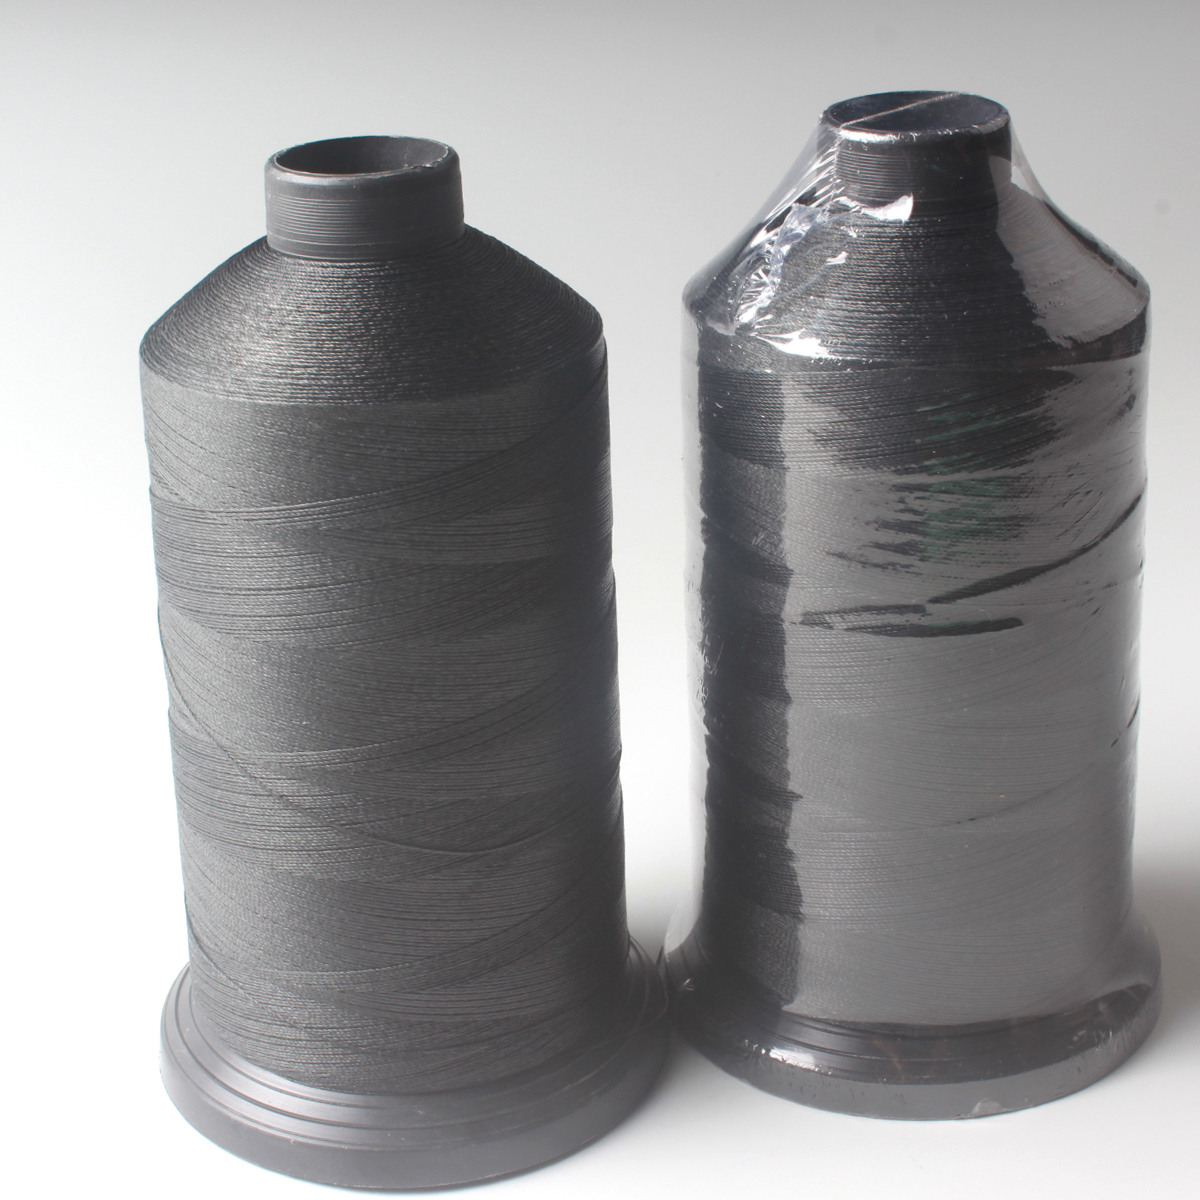 1kg/spool 0.28mm 200D/3weave Braid UHMWPE Sewing Thread For webbing/strap/fabric/cloth/bag/garment